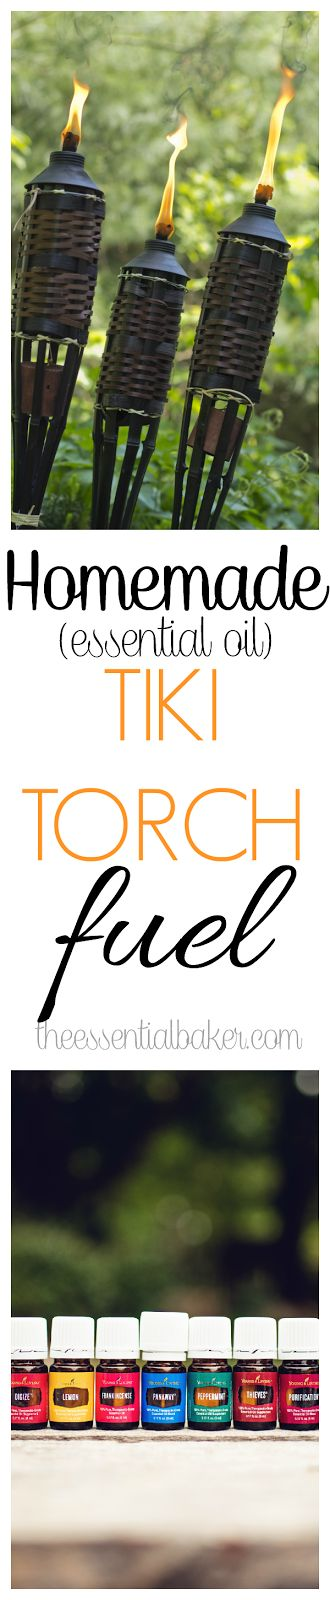 Homemade Tiki Torch Fuel http://www.theessentialbaker.com/2015/07/homemade-tiki-torch-fuel-to-keep-bugs-away/ - great for keeping the bugs away - made with essential oils! This is one of the best essential oil recipes!